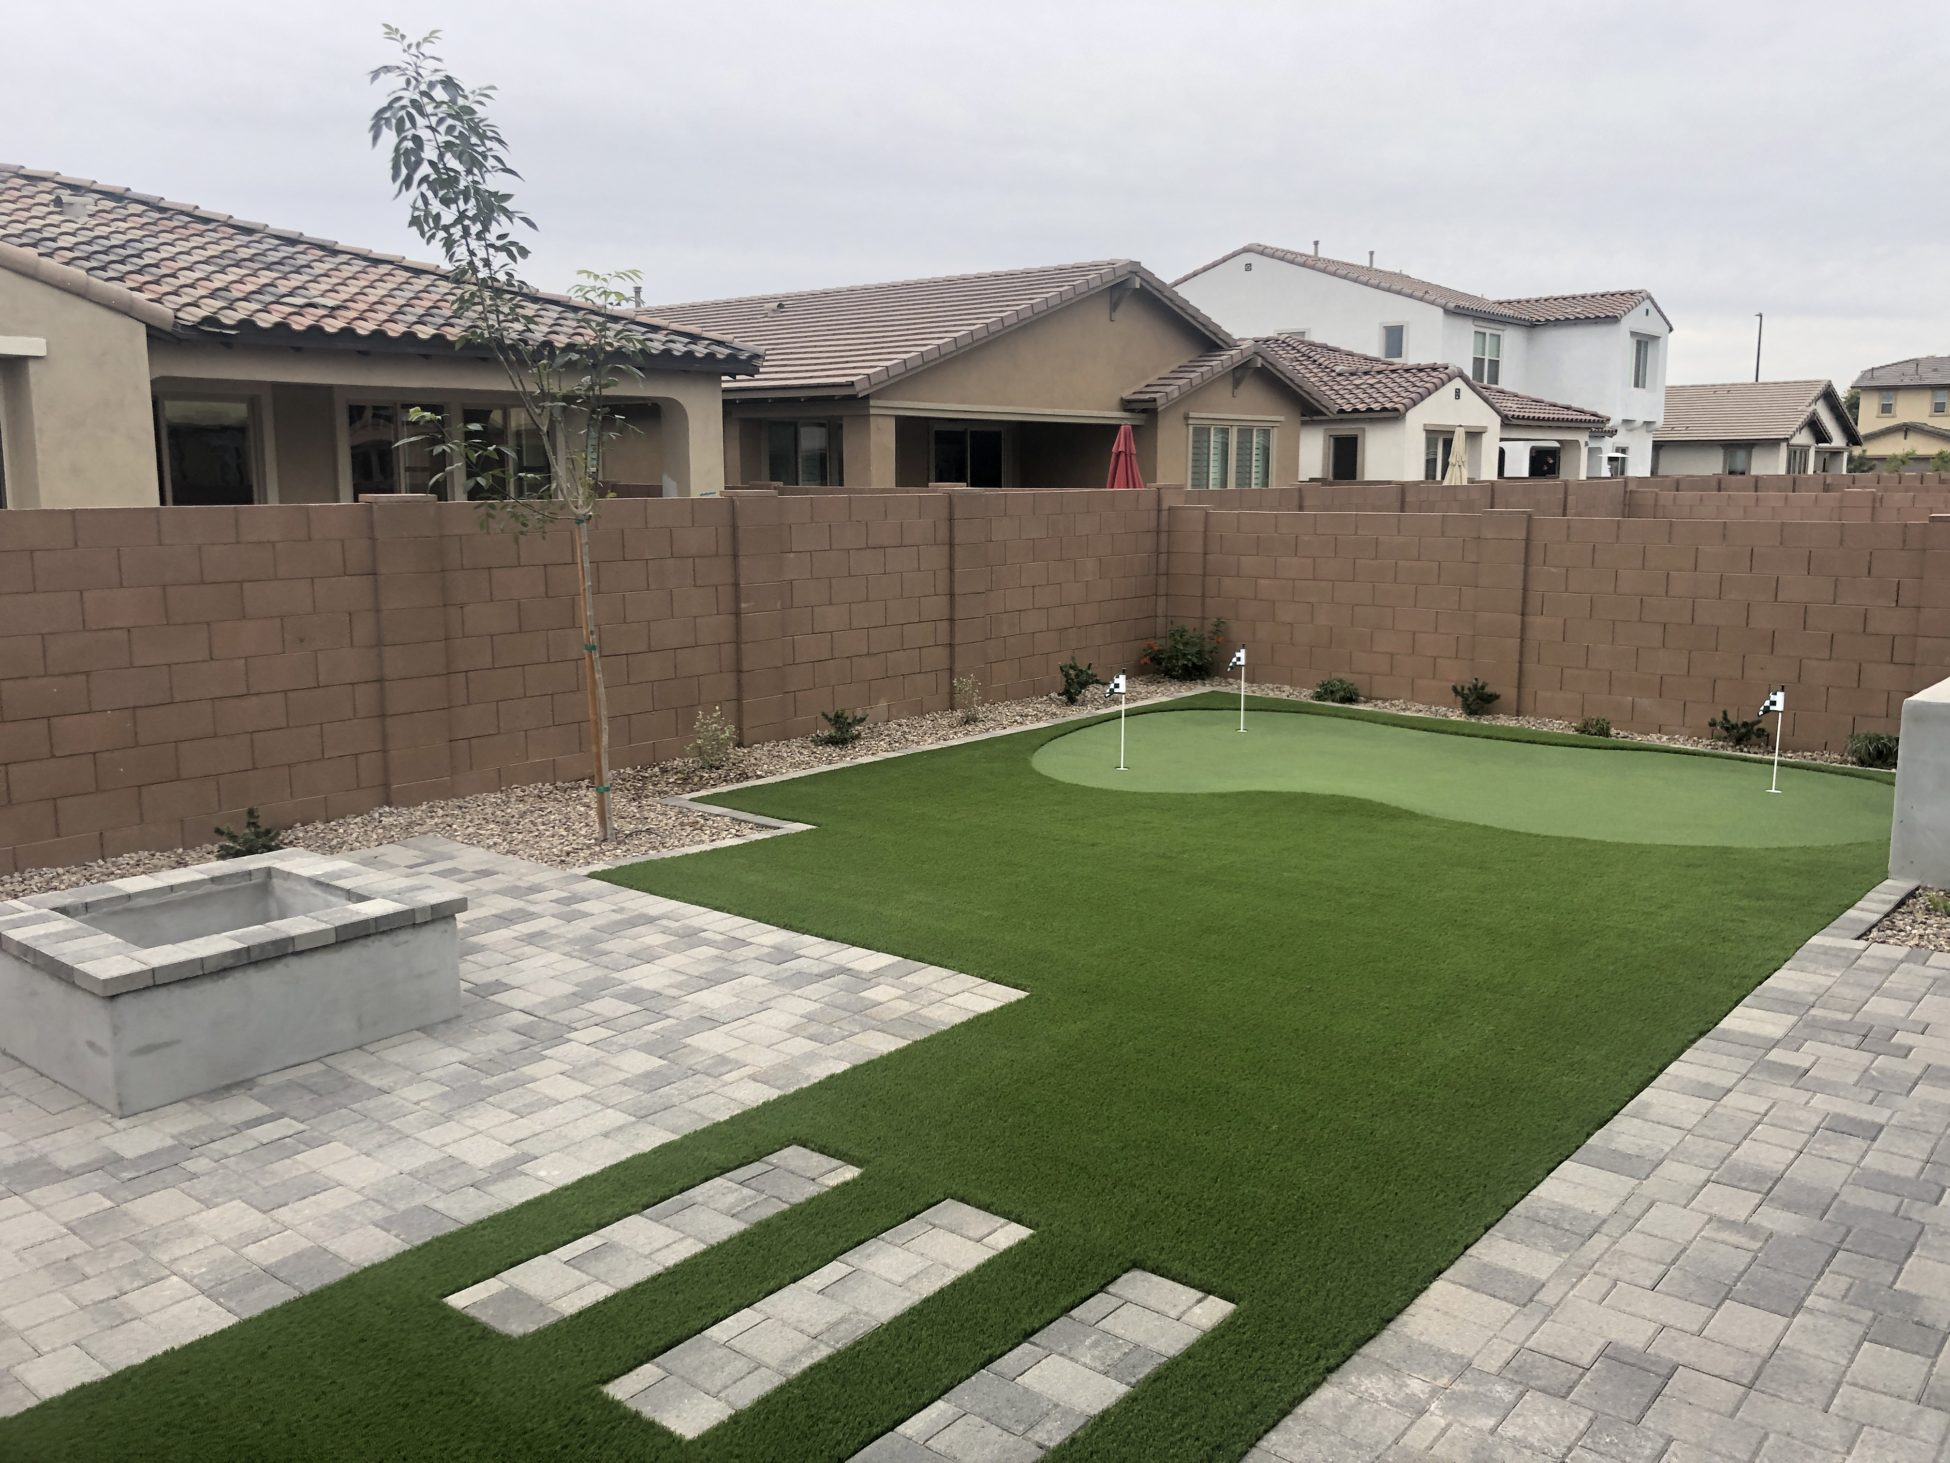 Check It Out Outdoor Putting Green In Arizona Backyard Landscape